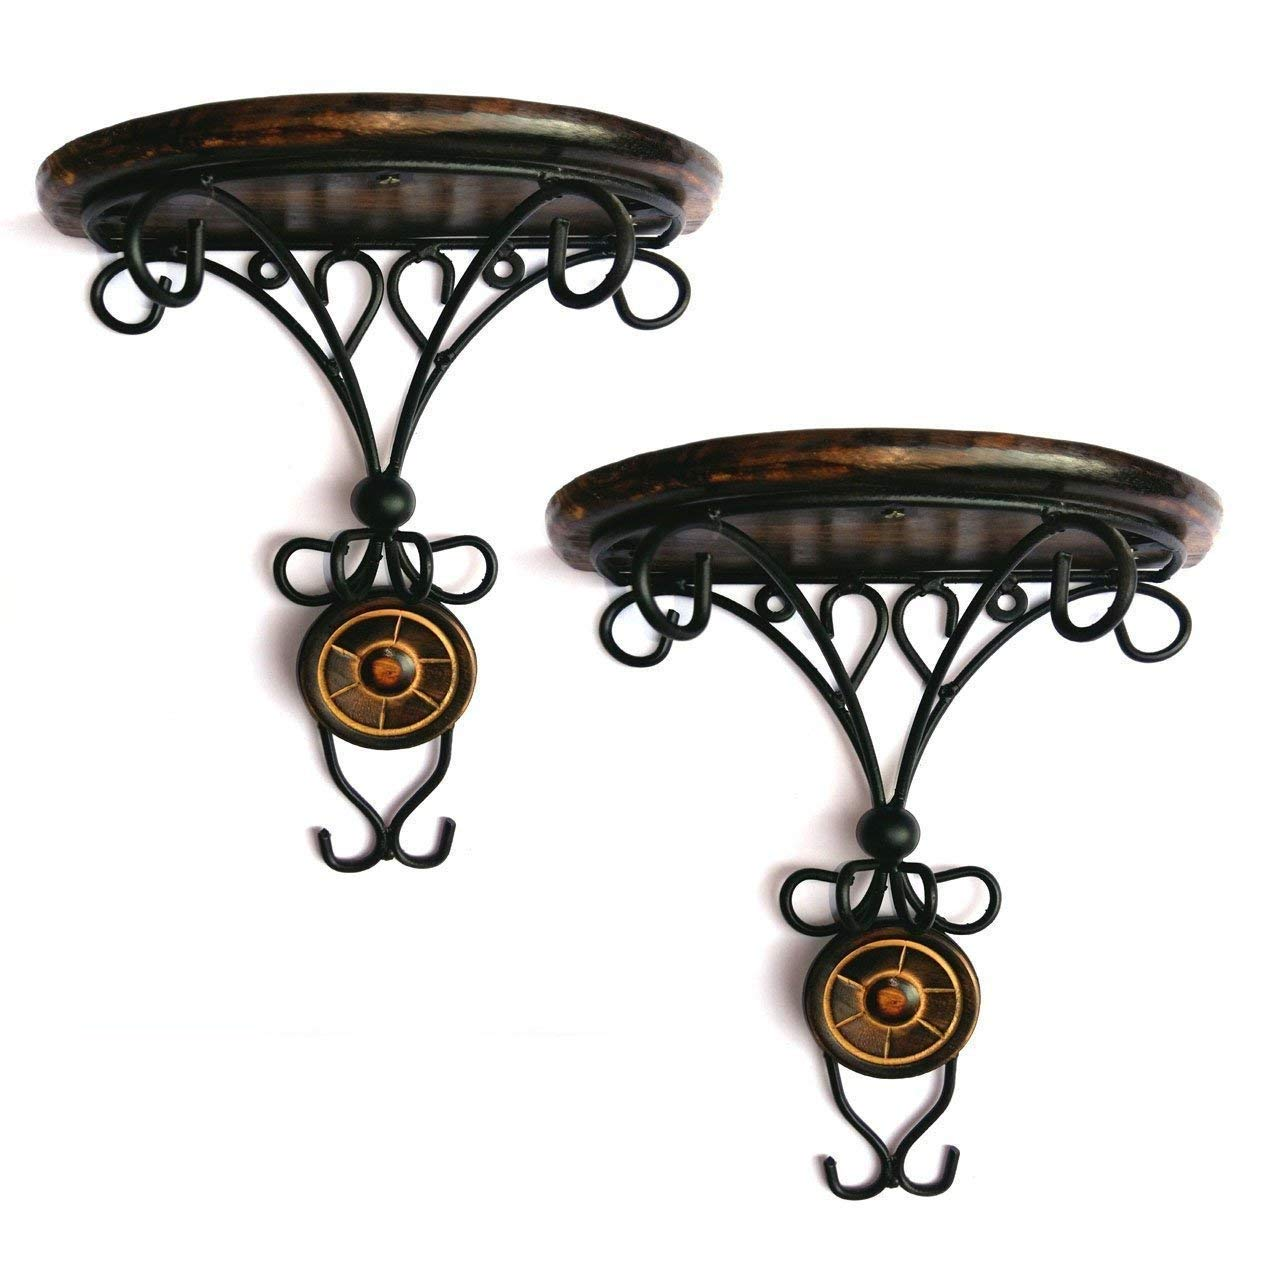 Wooden and Wrought Iron Wall Mounted Bracket